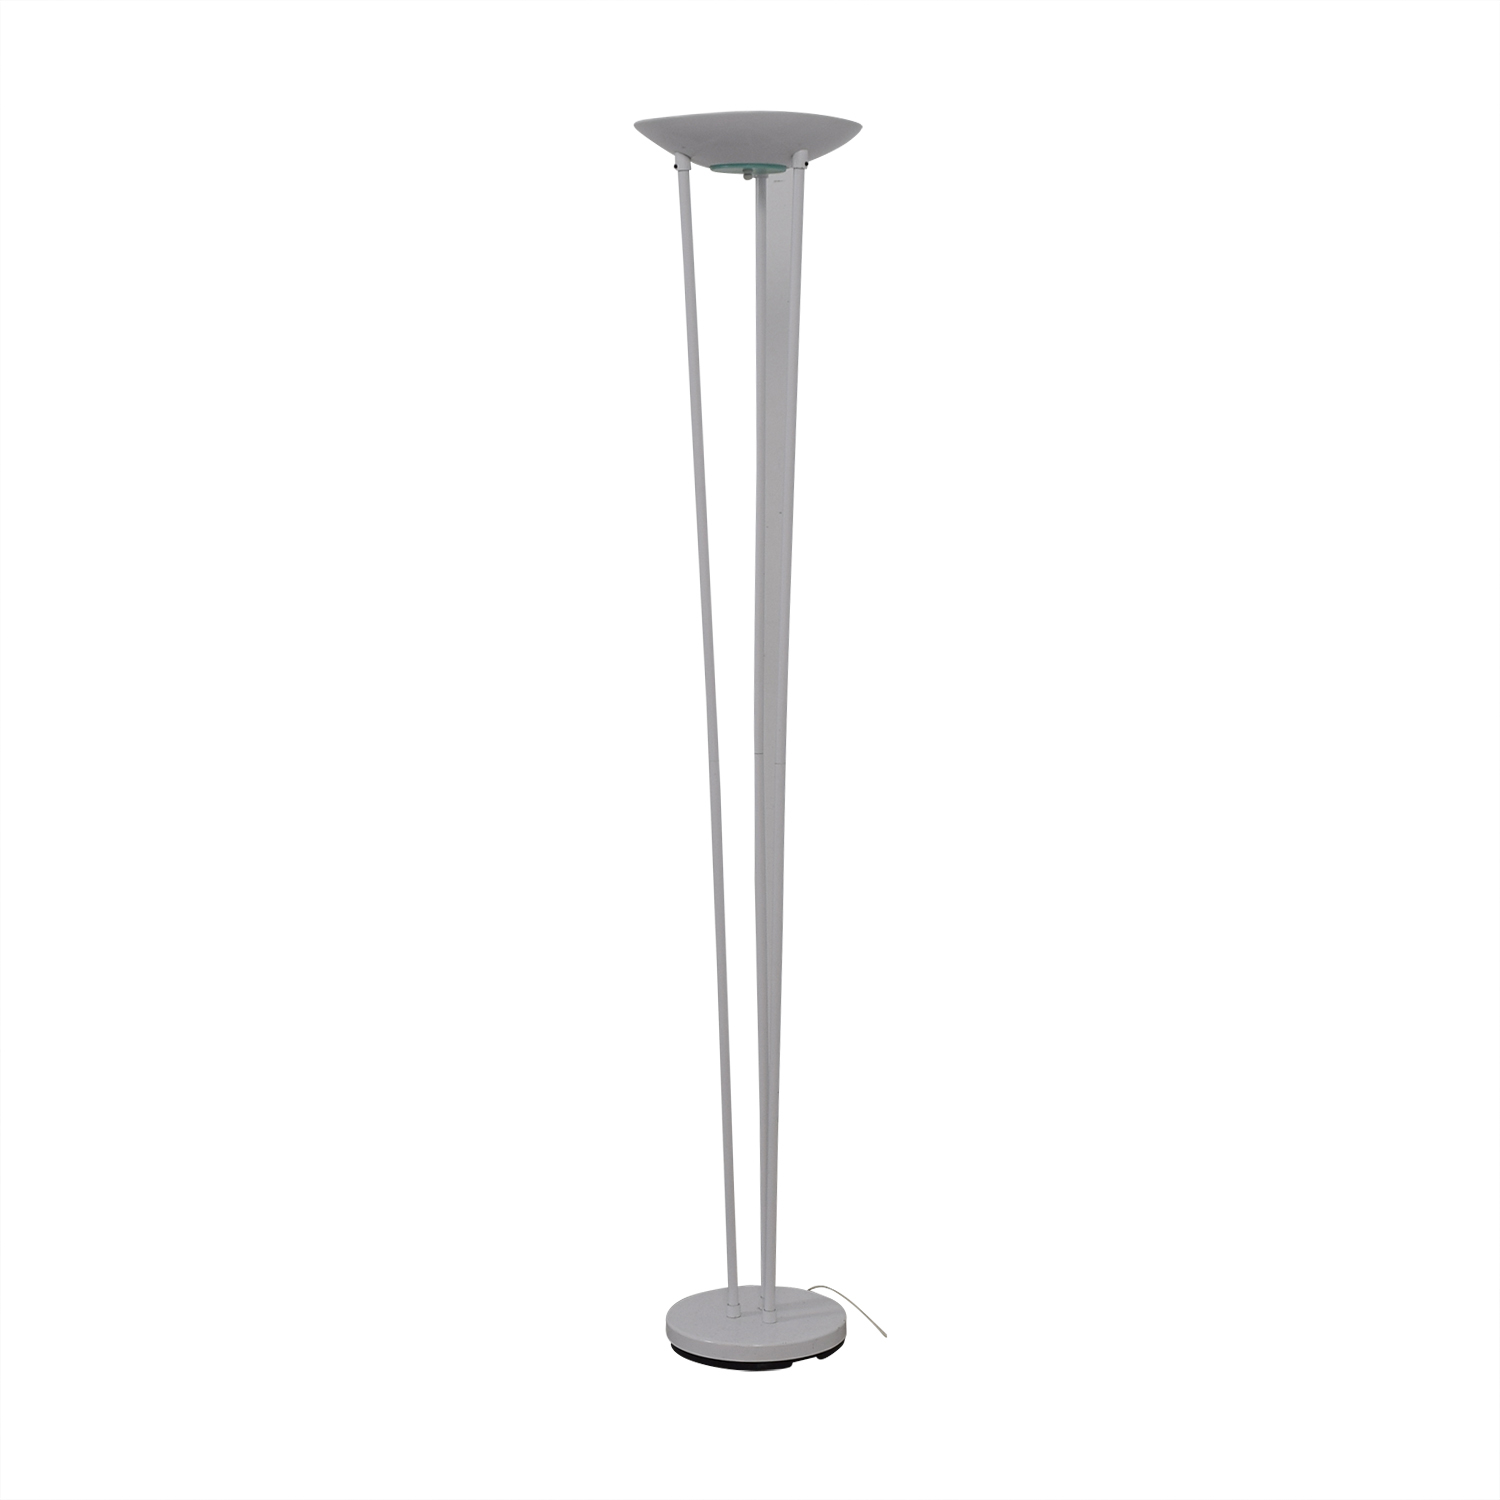 buy Torchiere Classic White Halogen Floor Lamp Torchiere Decor